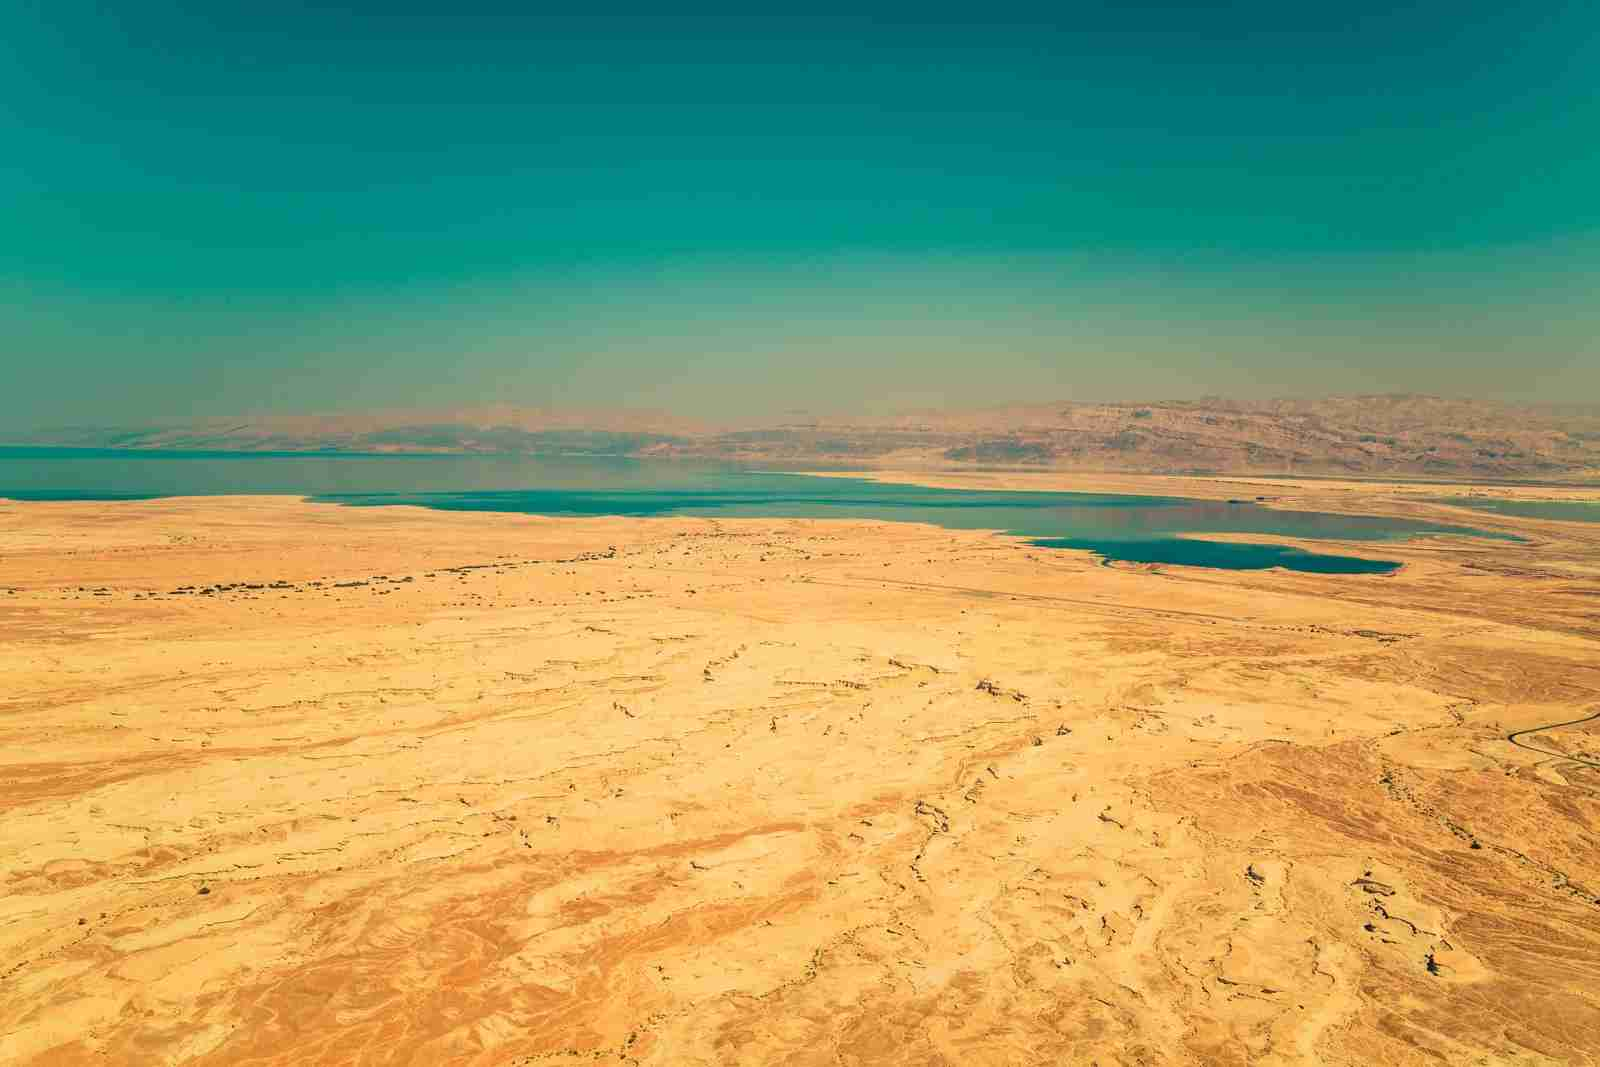 The Dead Sea. (Photo by Sammy Leigh Scholl/Unsplash)